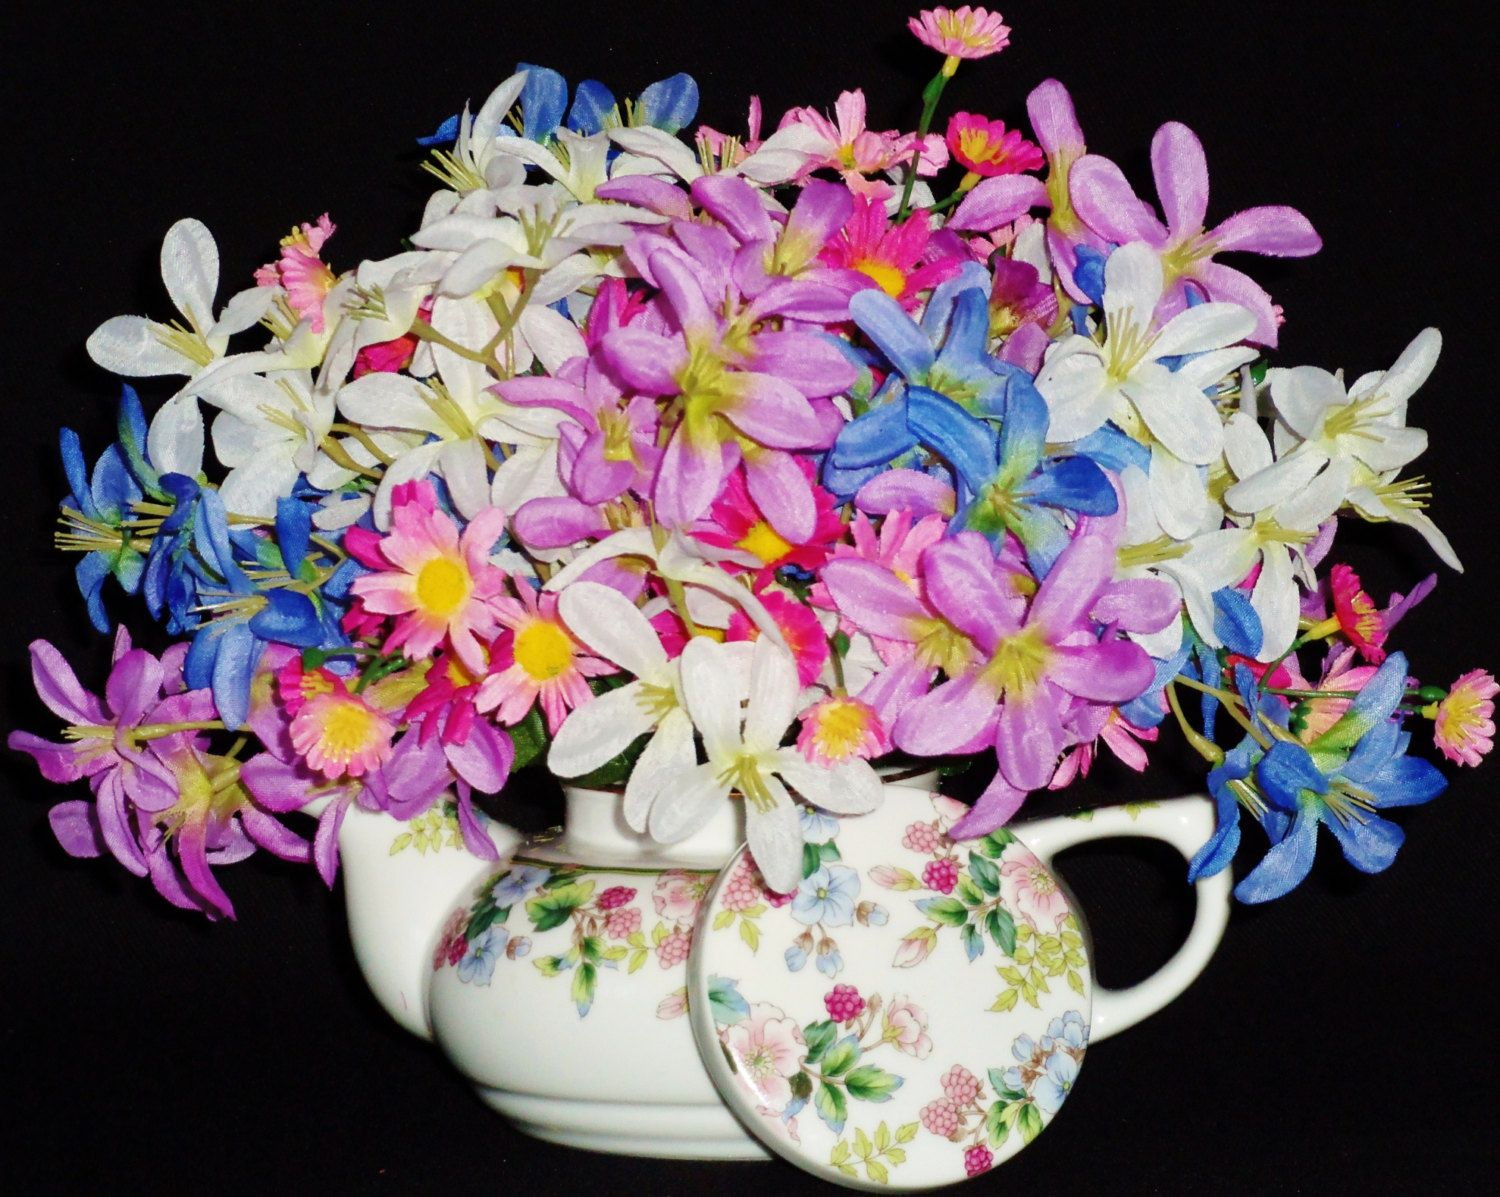 Teapot flower arrangements multi color spring flowers teapot vase teapot flower arrangements mightylinksfo